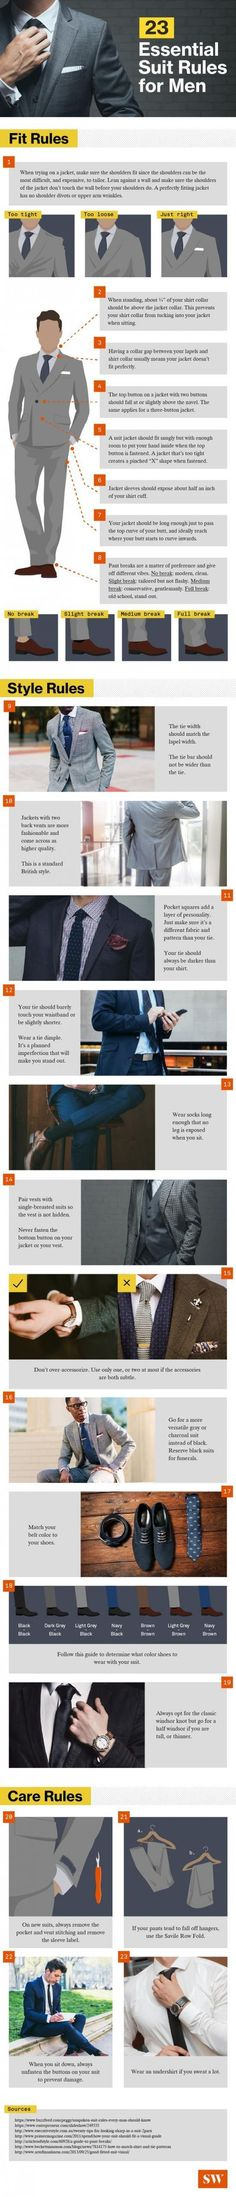 23 Essential Suit Tips for Men #Style #Fashion #Menswear Re-pinned by www.avacationrental4me.com